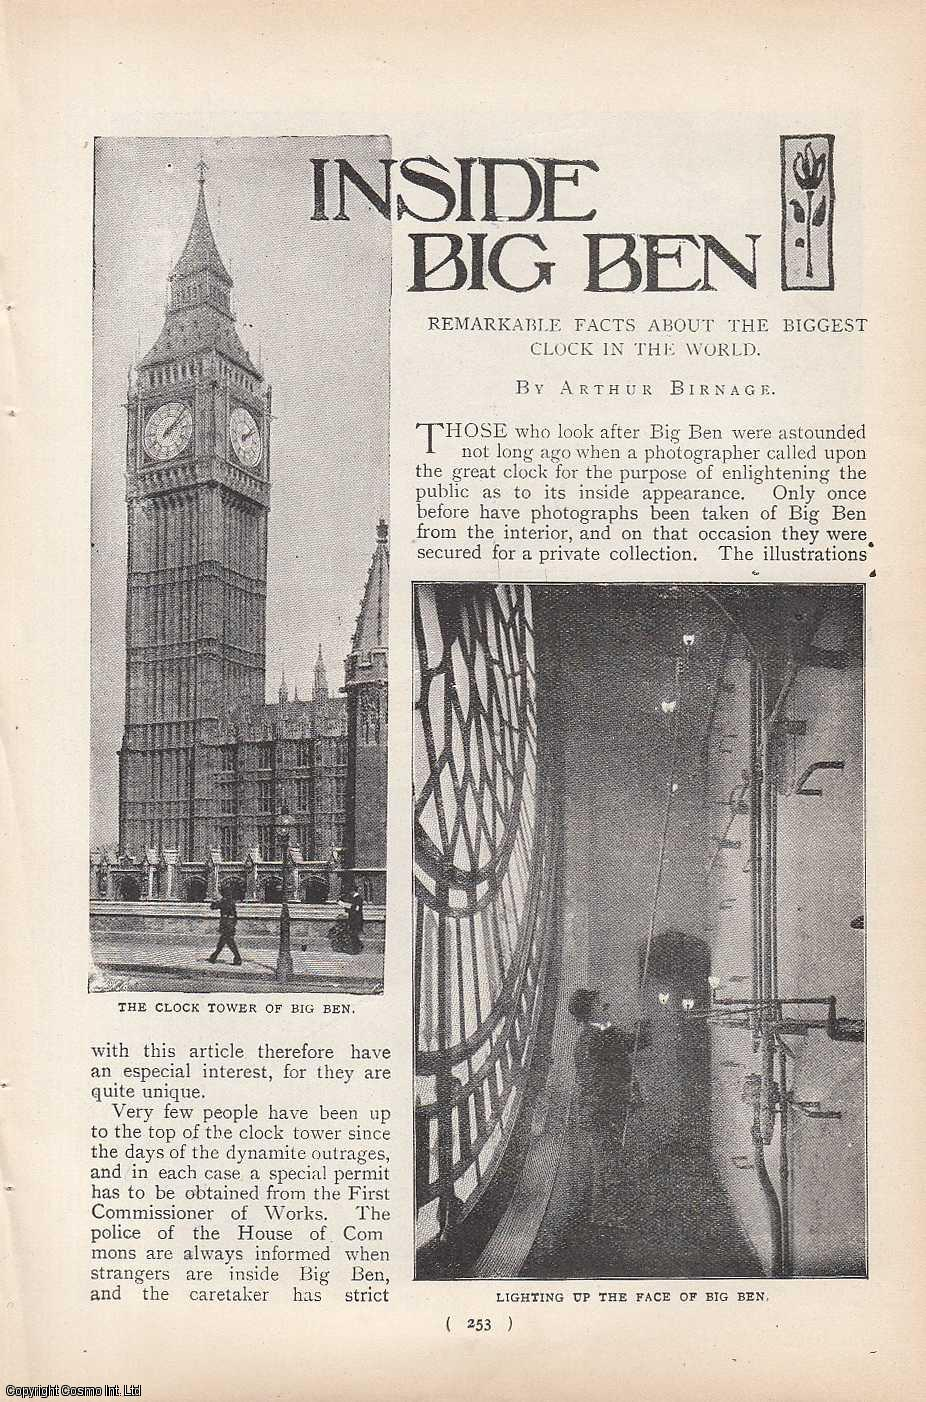 BIRNAGE, ARTHUR - Inside Big Ben (London): Remarkable Facts About The Biggest Clock in The World. A rare original article from the Harmsworth London Magazine, 1900-01.